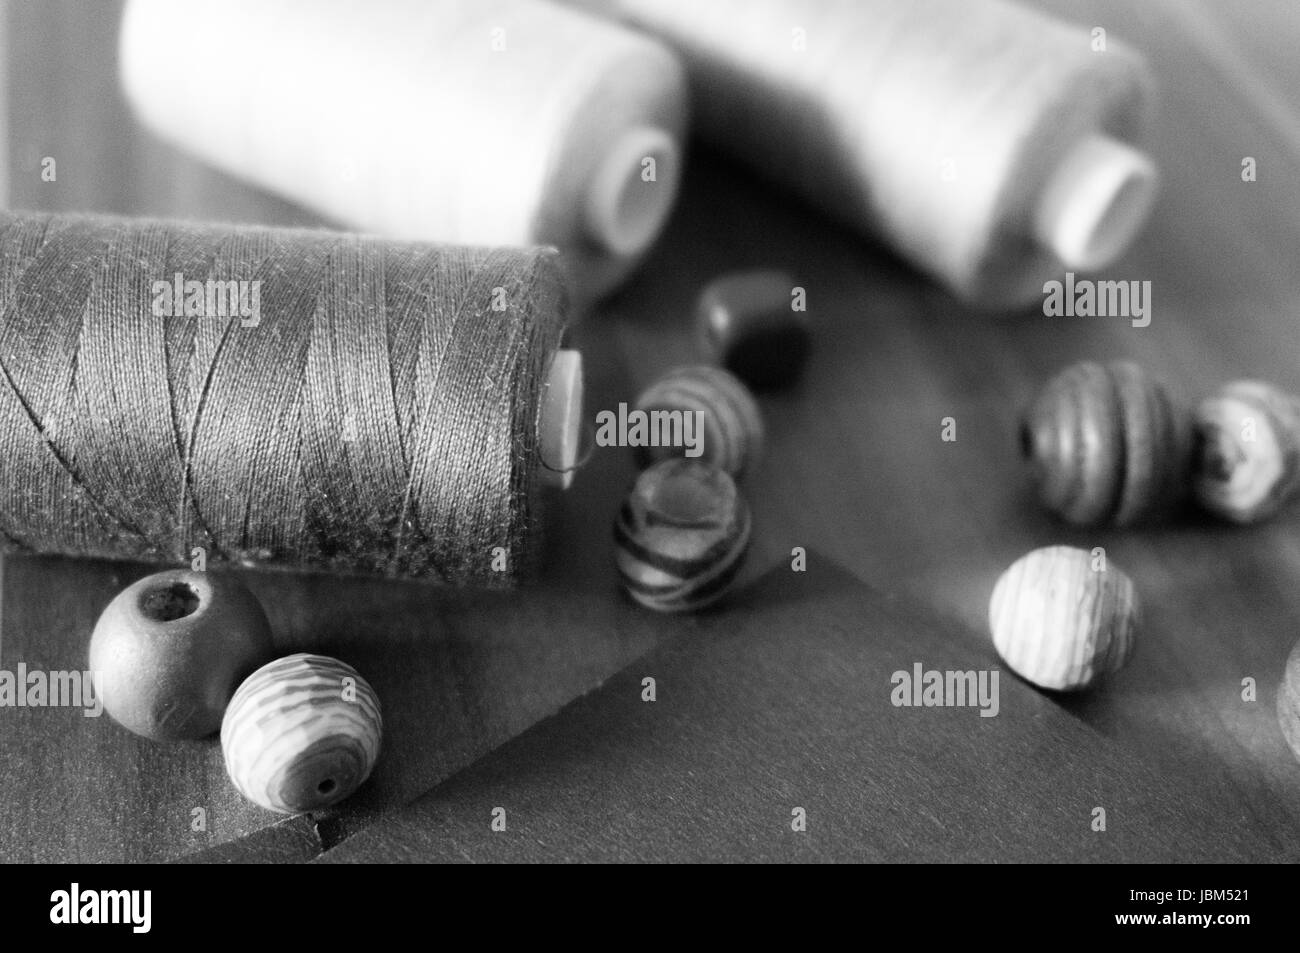 Thread, beads and paper close-up (desaturated) - Stock Image